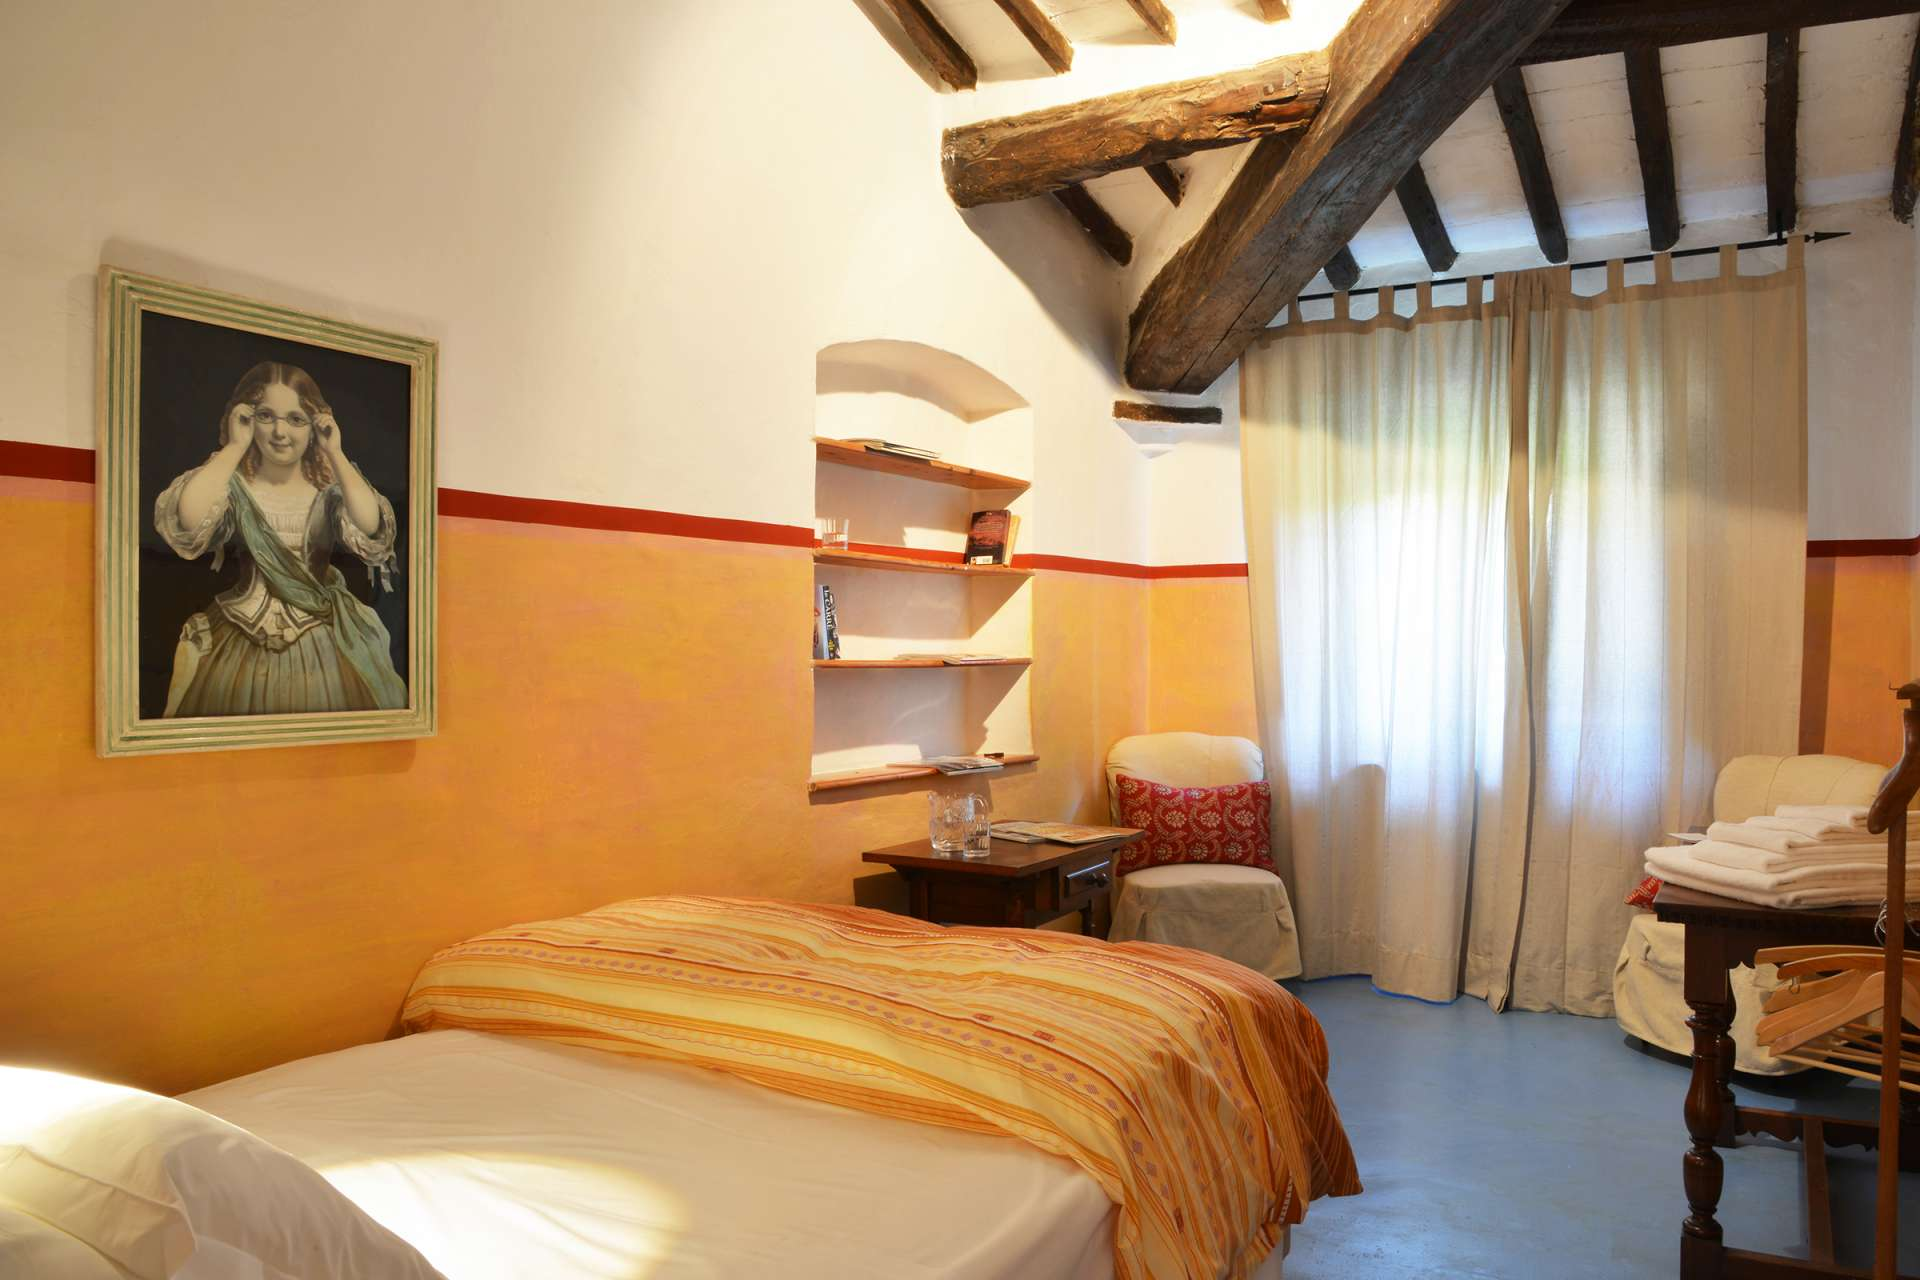 Tizzano 9 Bed Luxury Villa With Pool Chianti Tuscany Now More